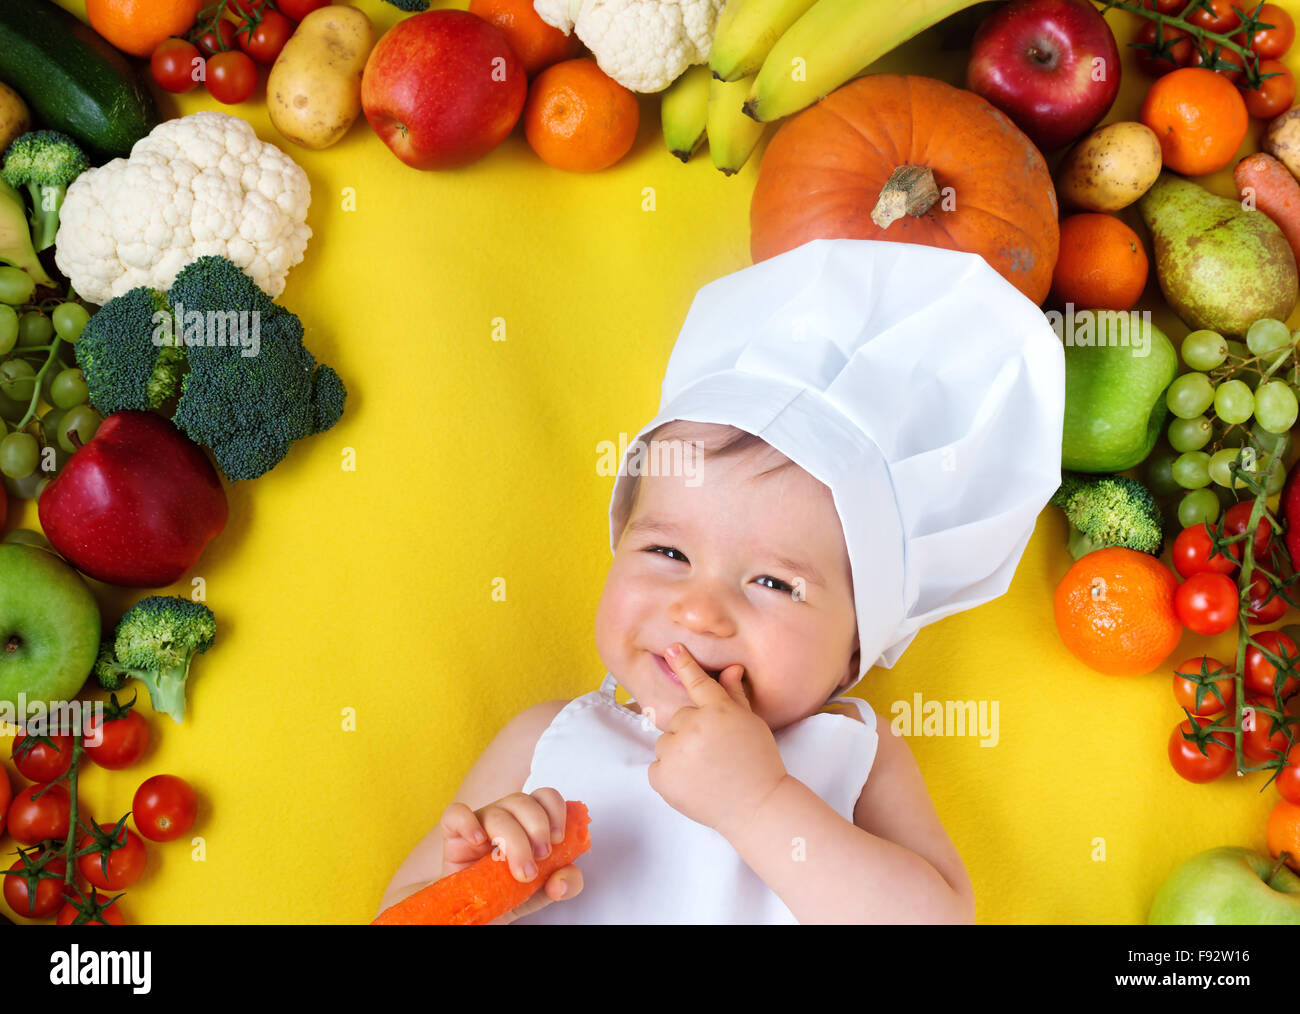 Bébé entouré de fruits et légumes Photo Stock